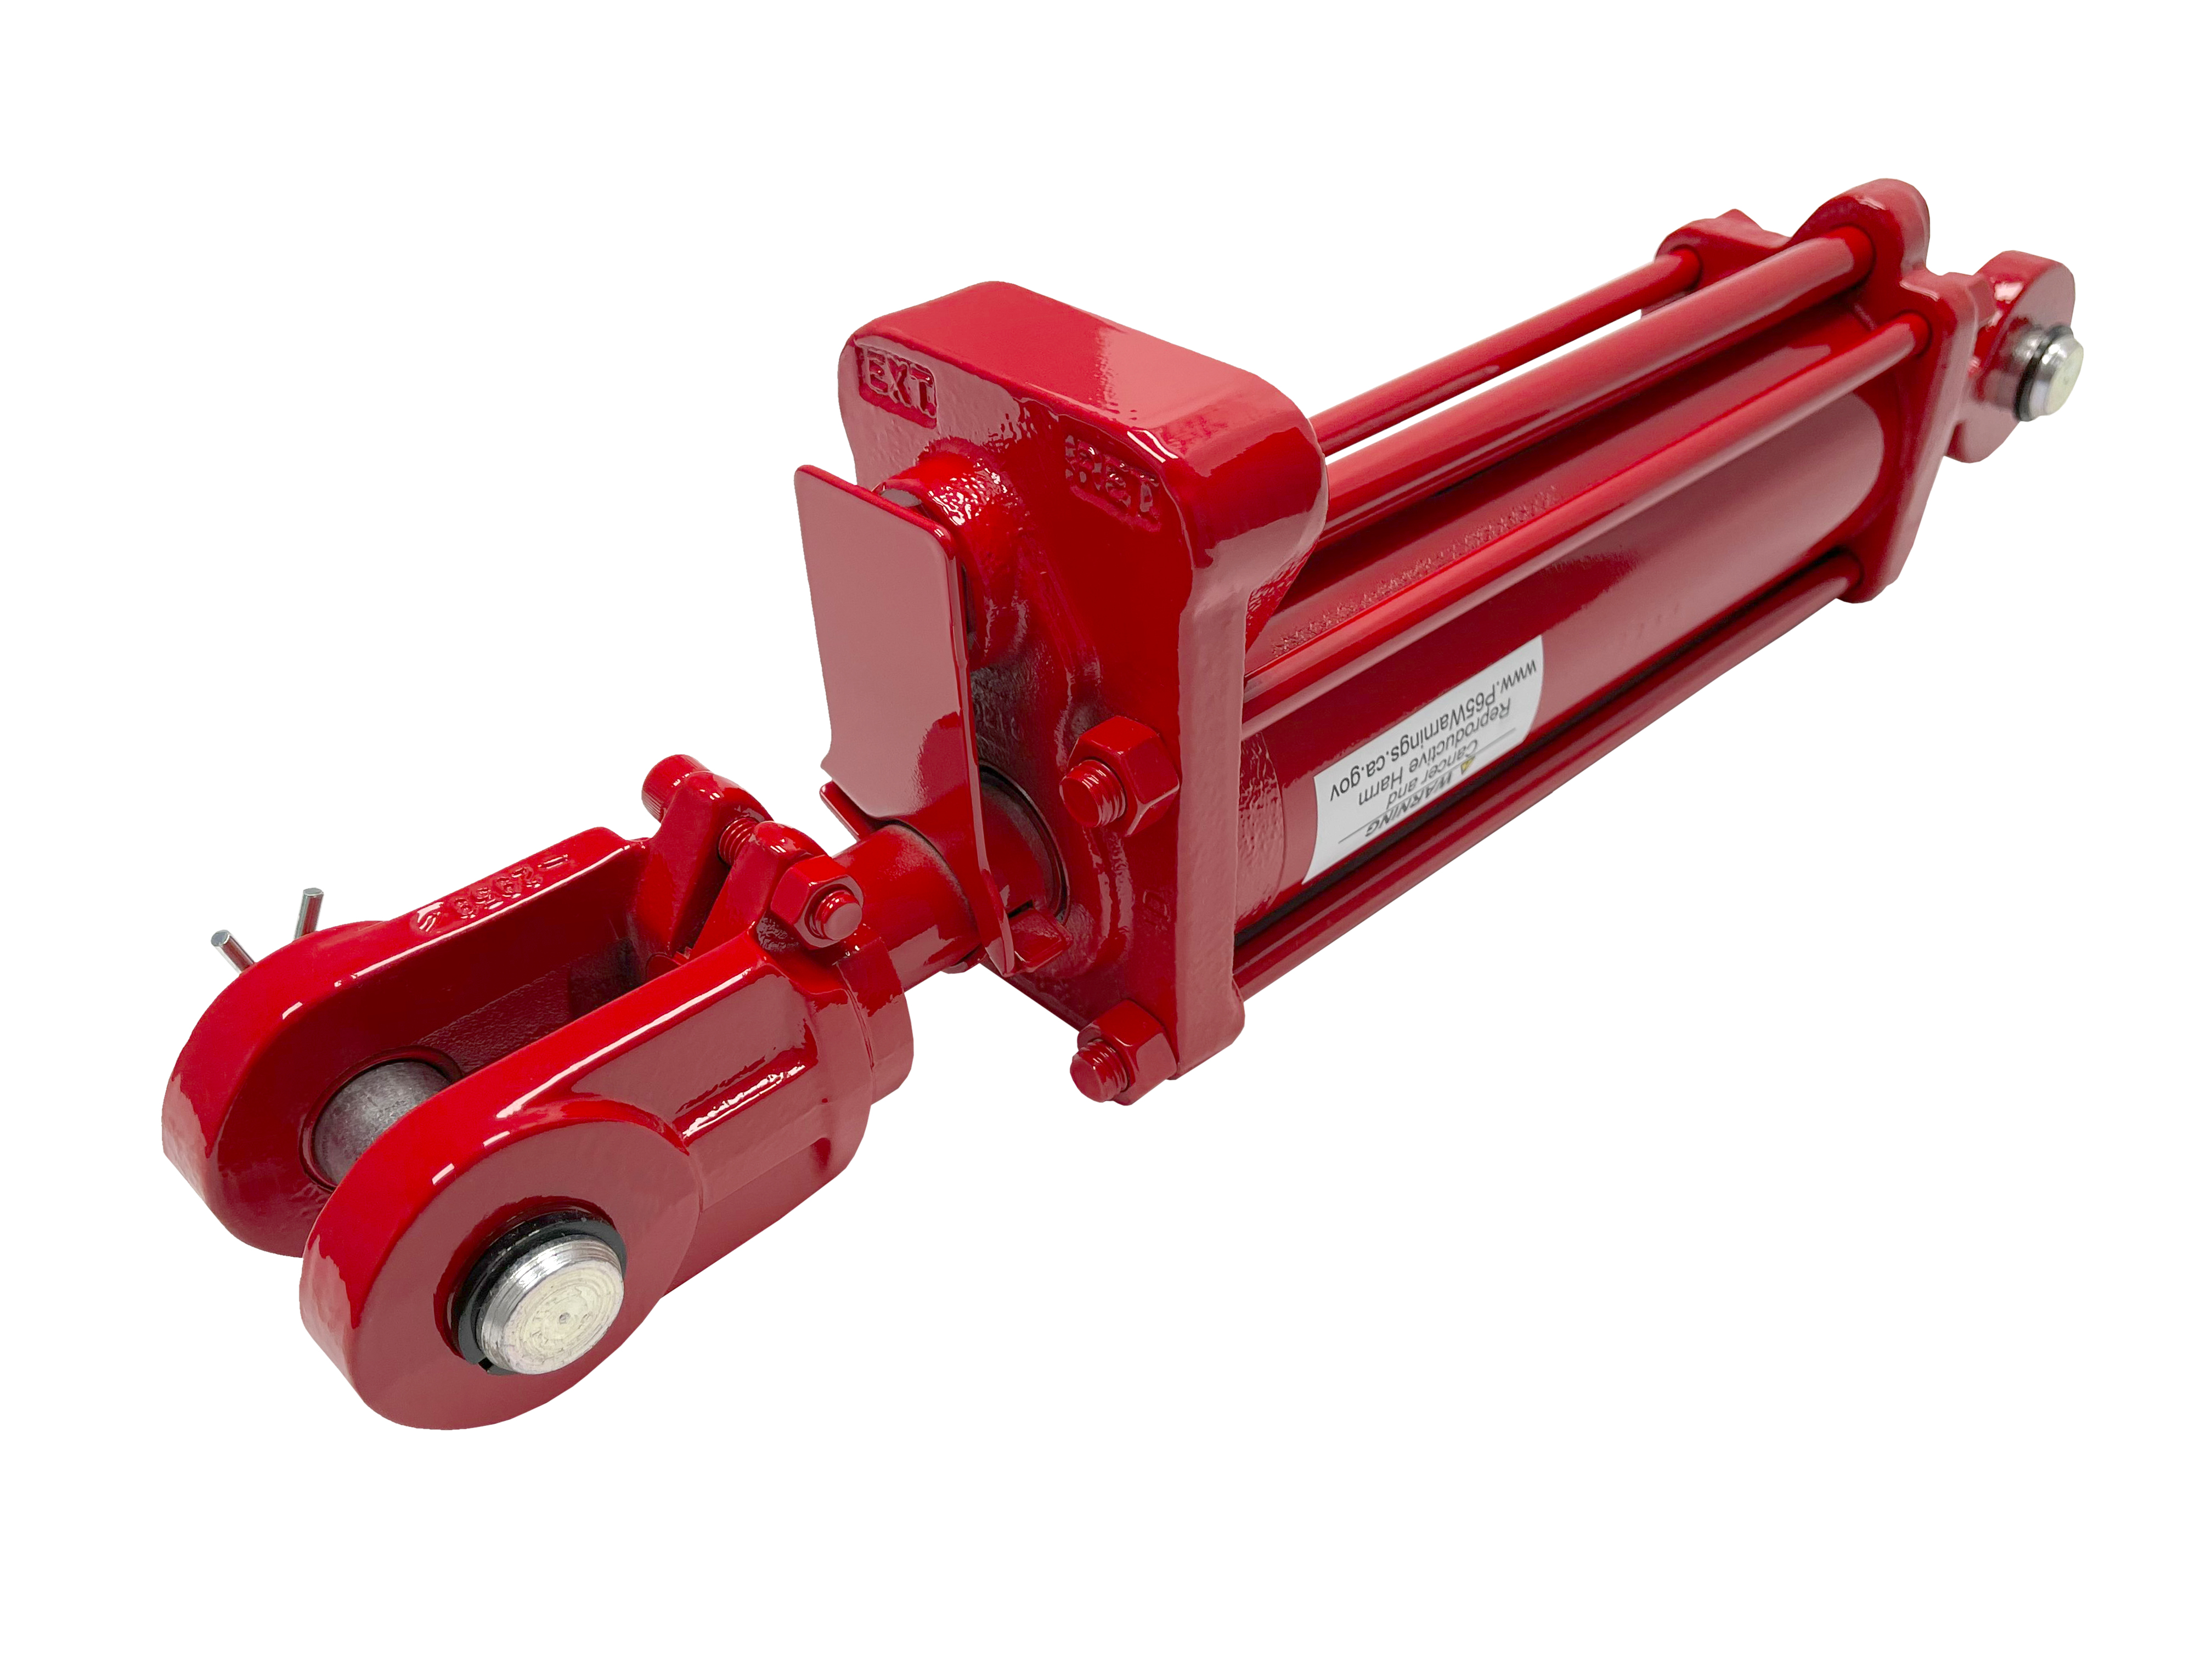 4 bore x 8 stroke CROSS hydraulic cylinder with depth control, tie rod double acting cylinder DC series | CROSS MANUFACTURING